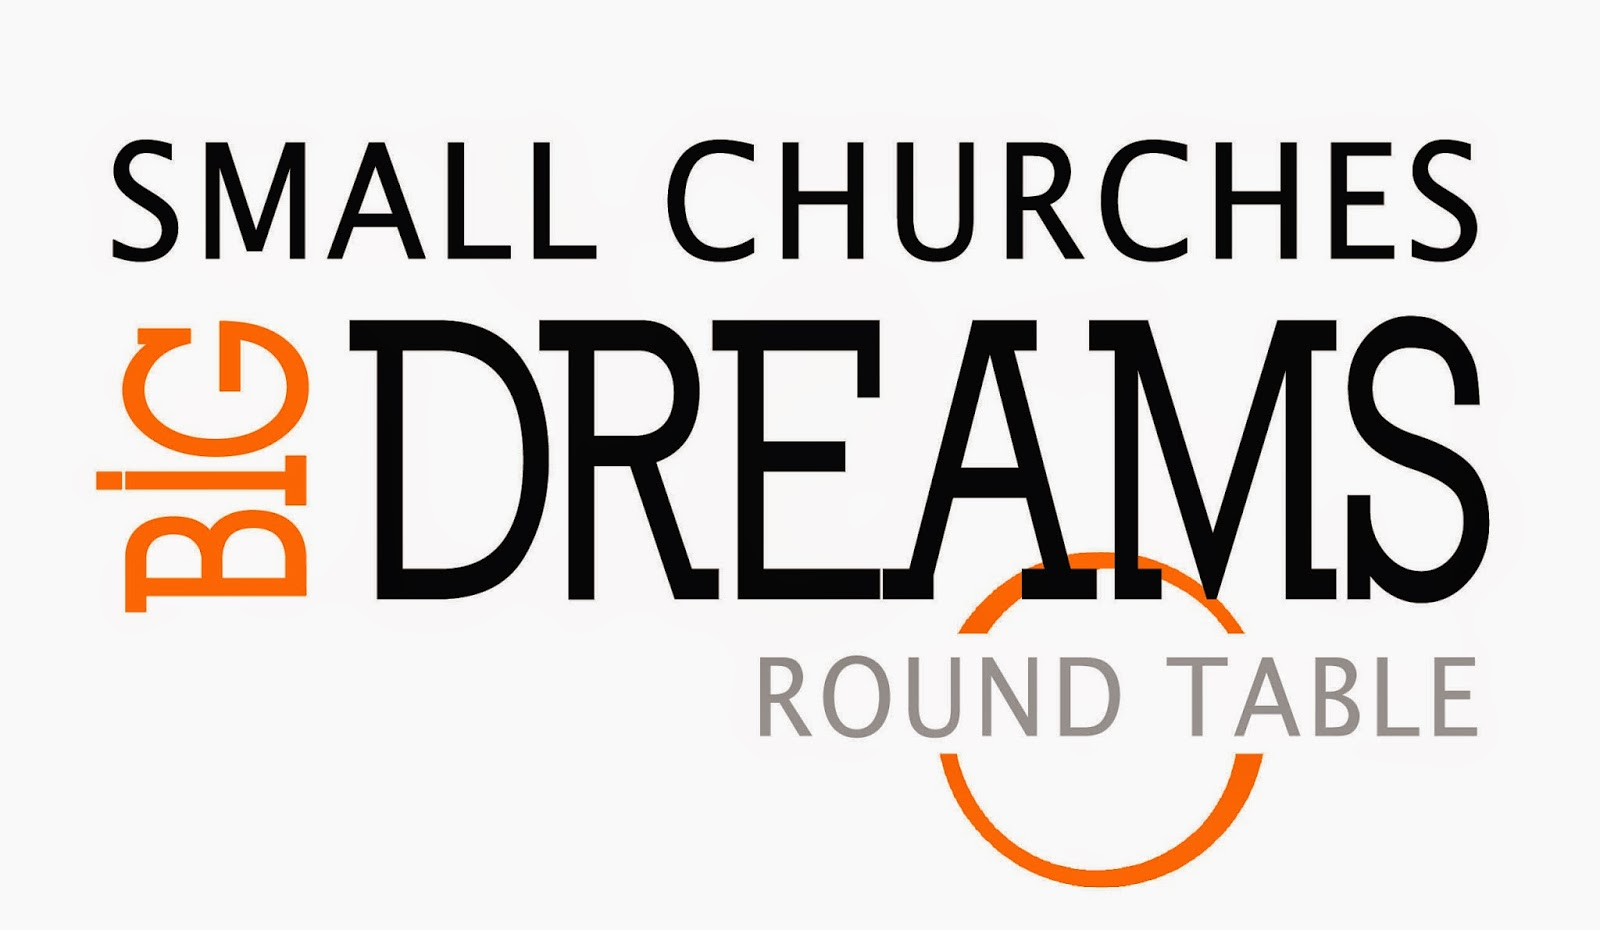 Round Table Special Hope Dealer In Amishland Special Announcement Small Church Big